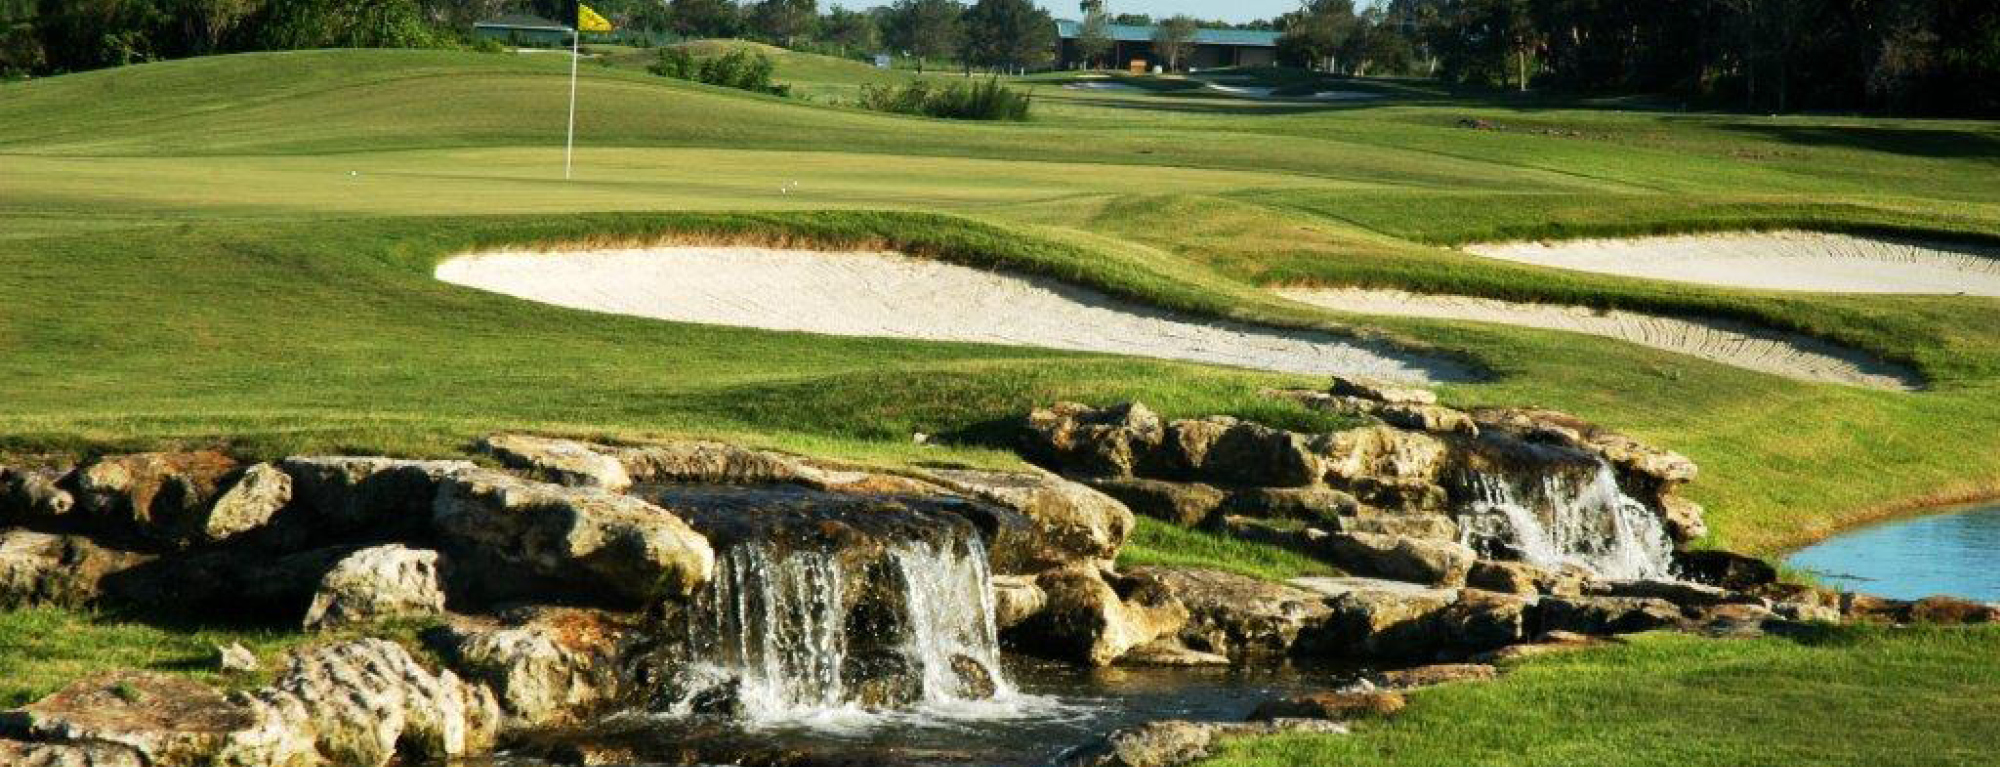 Pointe West Country Club: Staff Directory